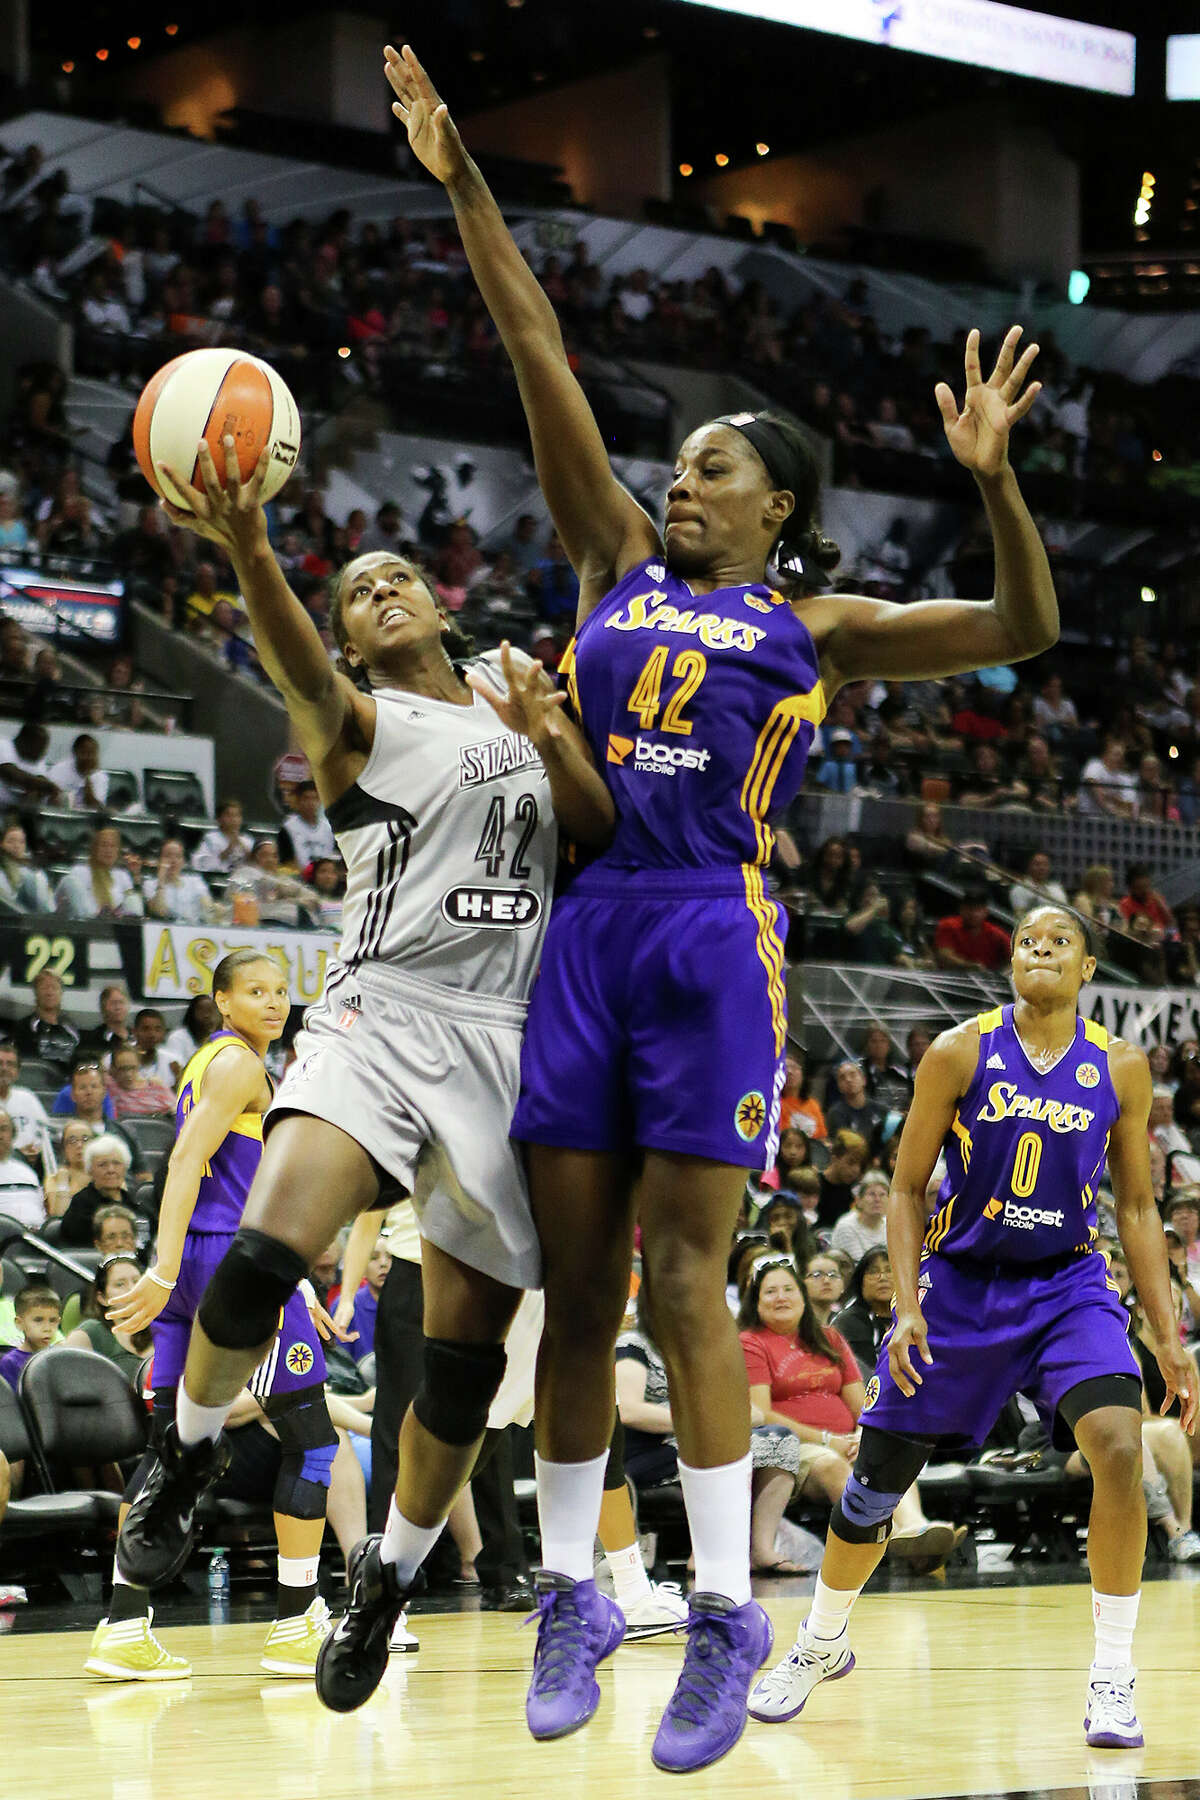 Shenise Johnson of the Stars (left) tries to get a shot past Jantel Lavender of the Los Angeles Sparks during the second half of their game at the AT&T Center on Aug. 10, 2014. The Stars beat the Sparks 82-76